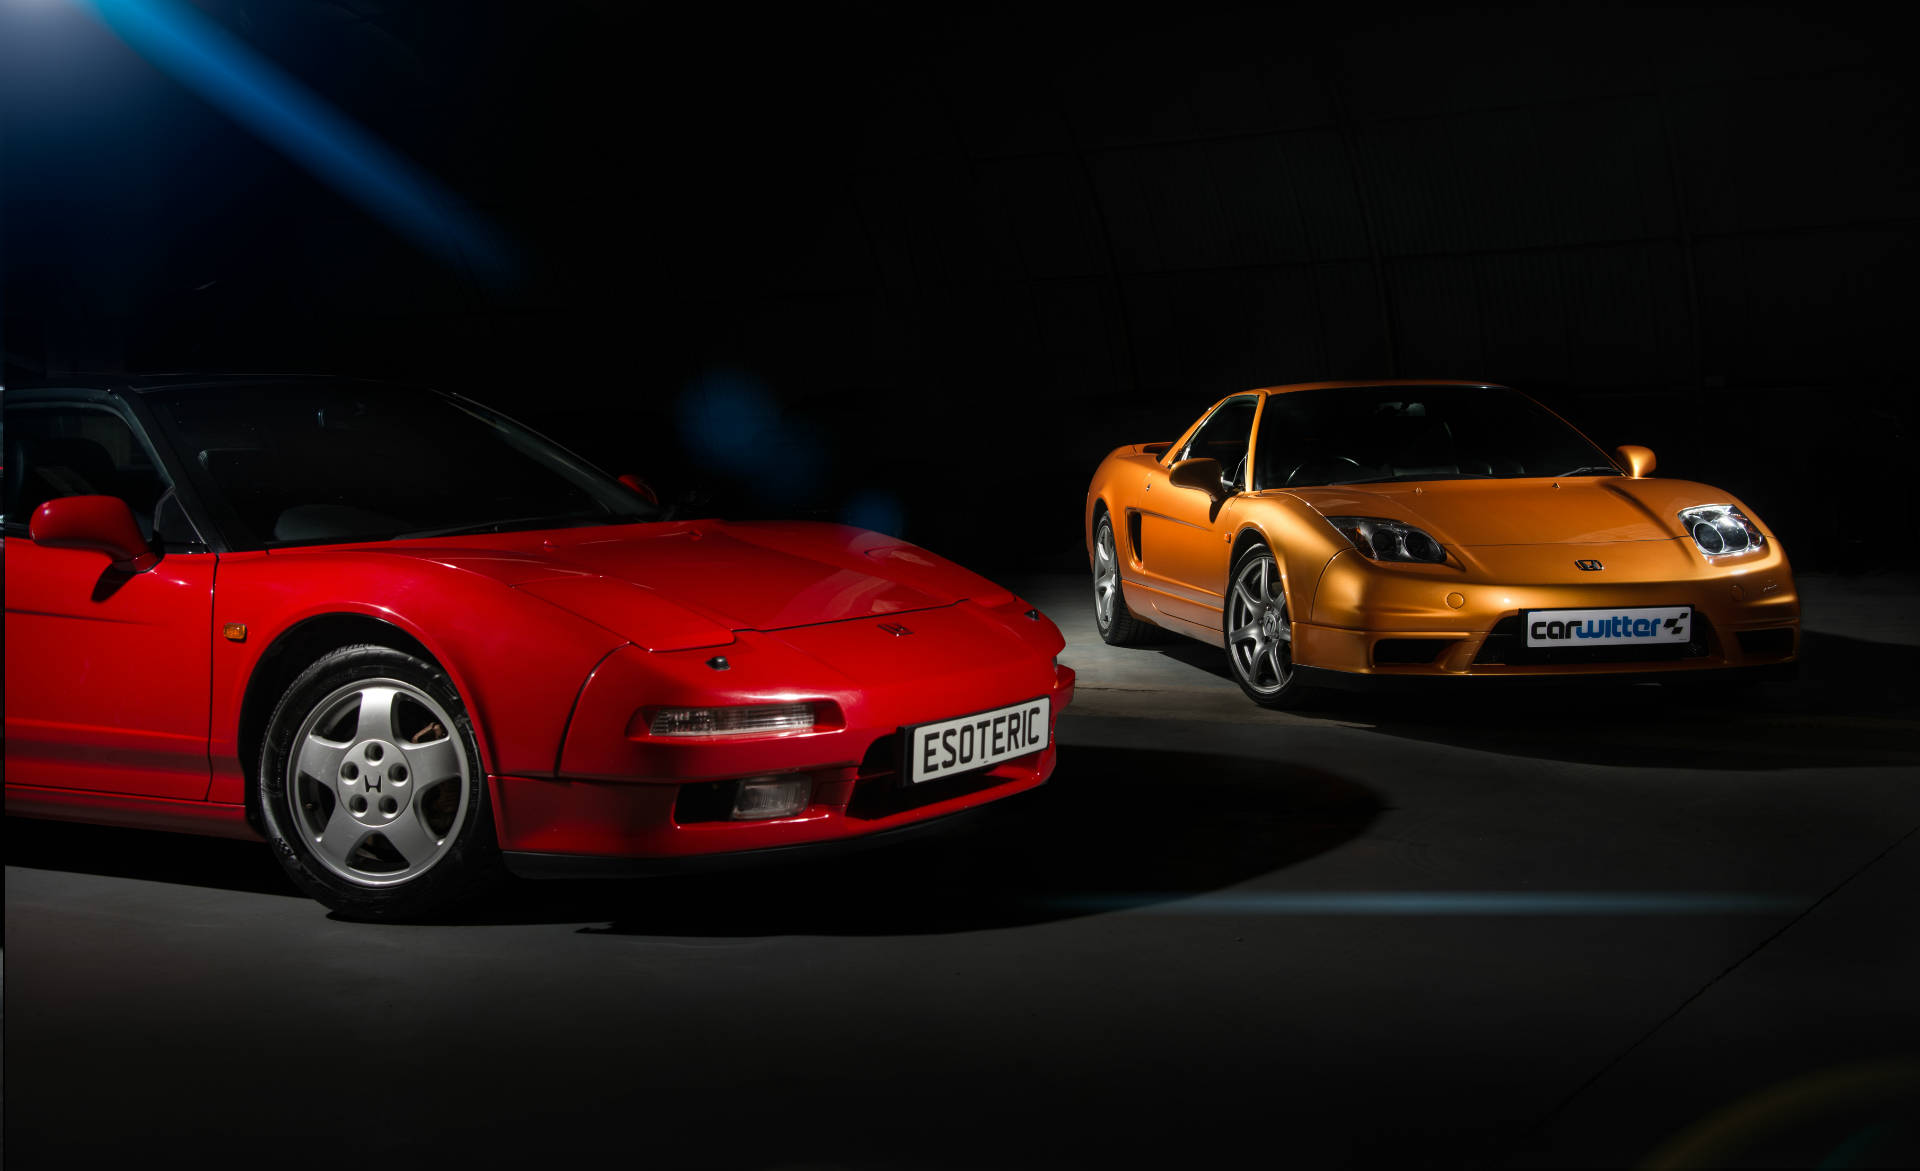 2005-Honda-NSX-Imola-Orange-1991-Honda-NSX-Formula-Red-Dark-Shoot-carwitter